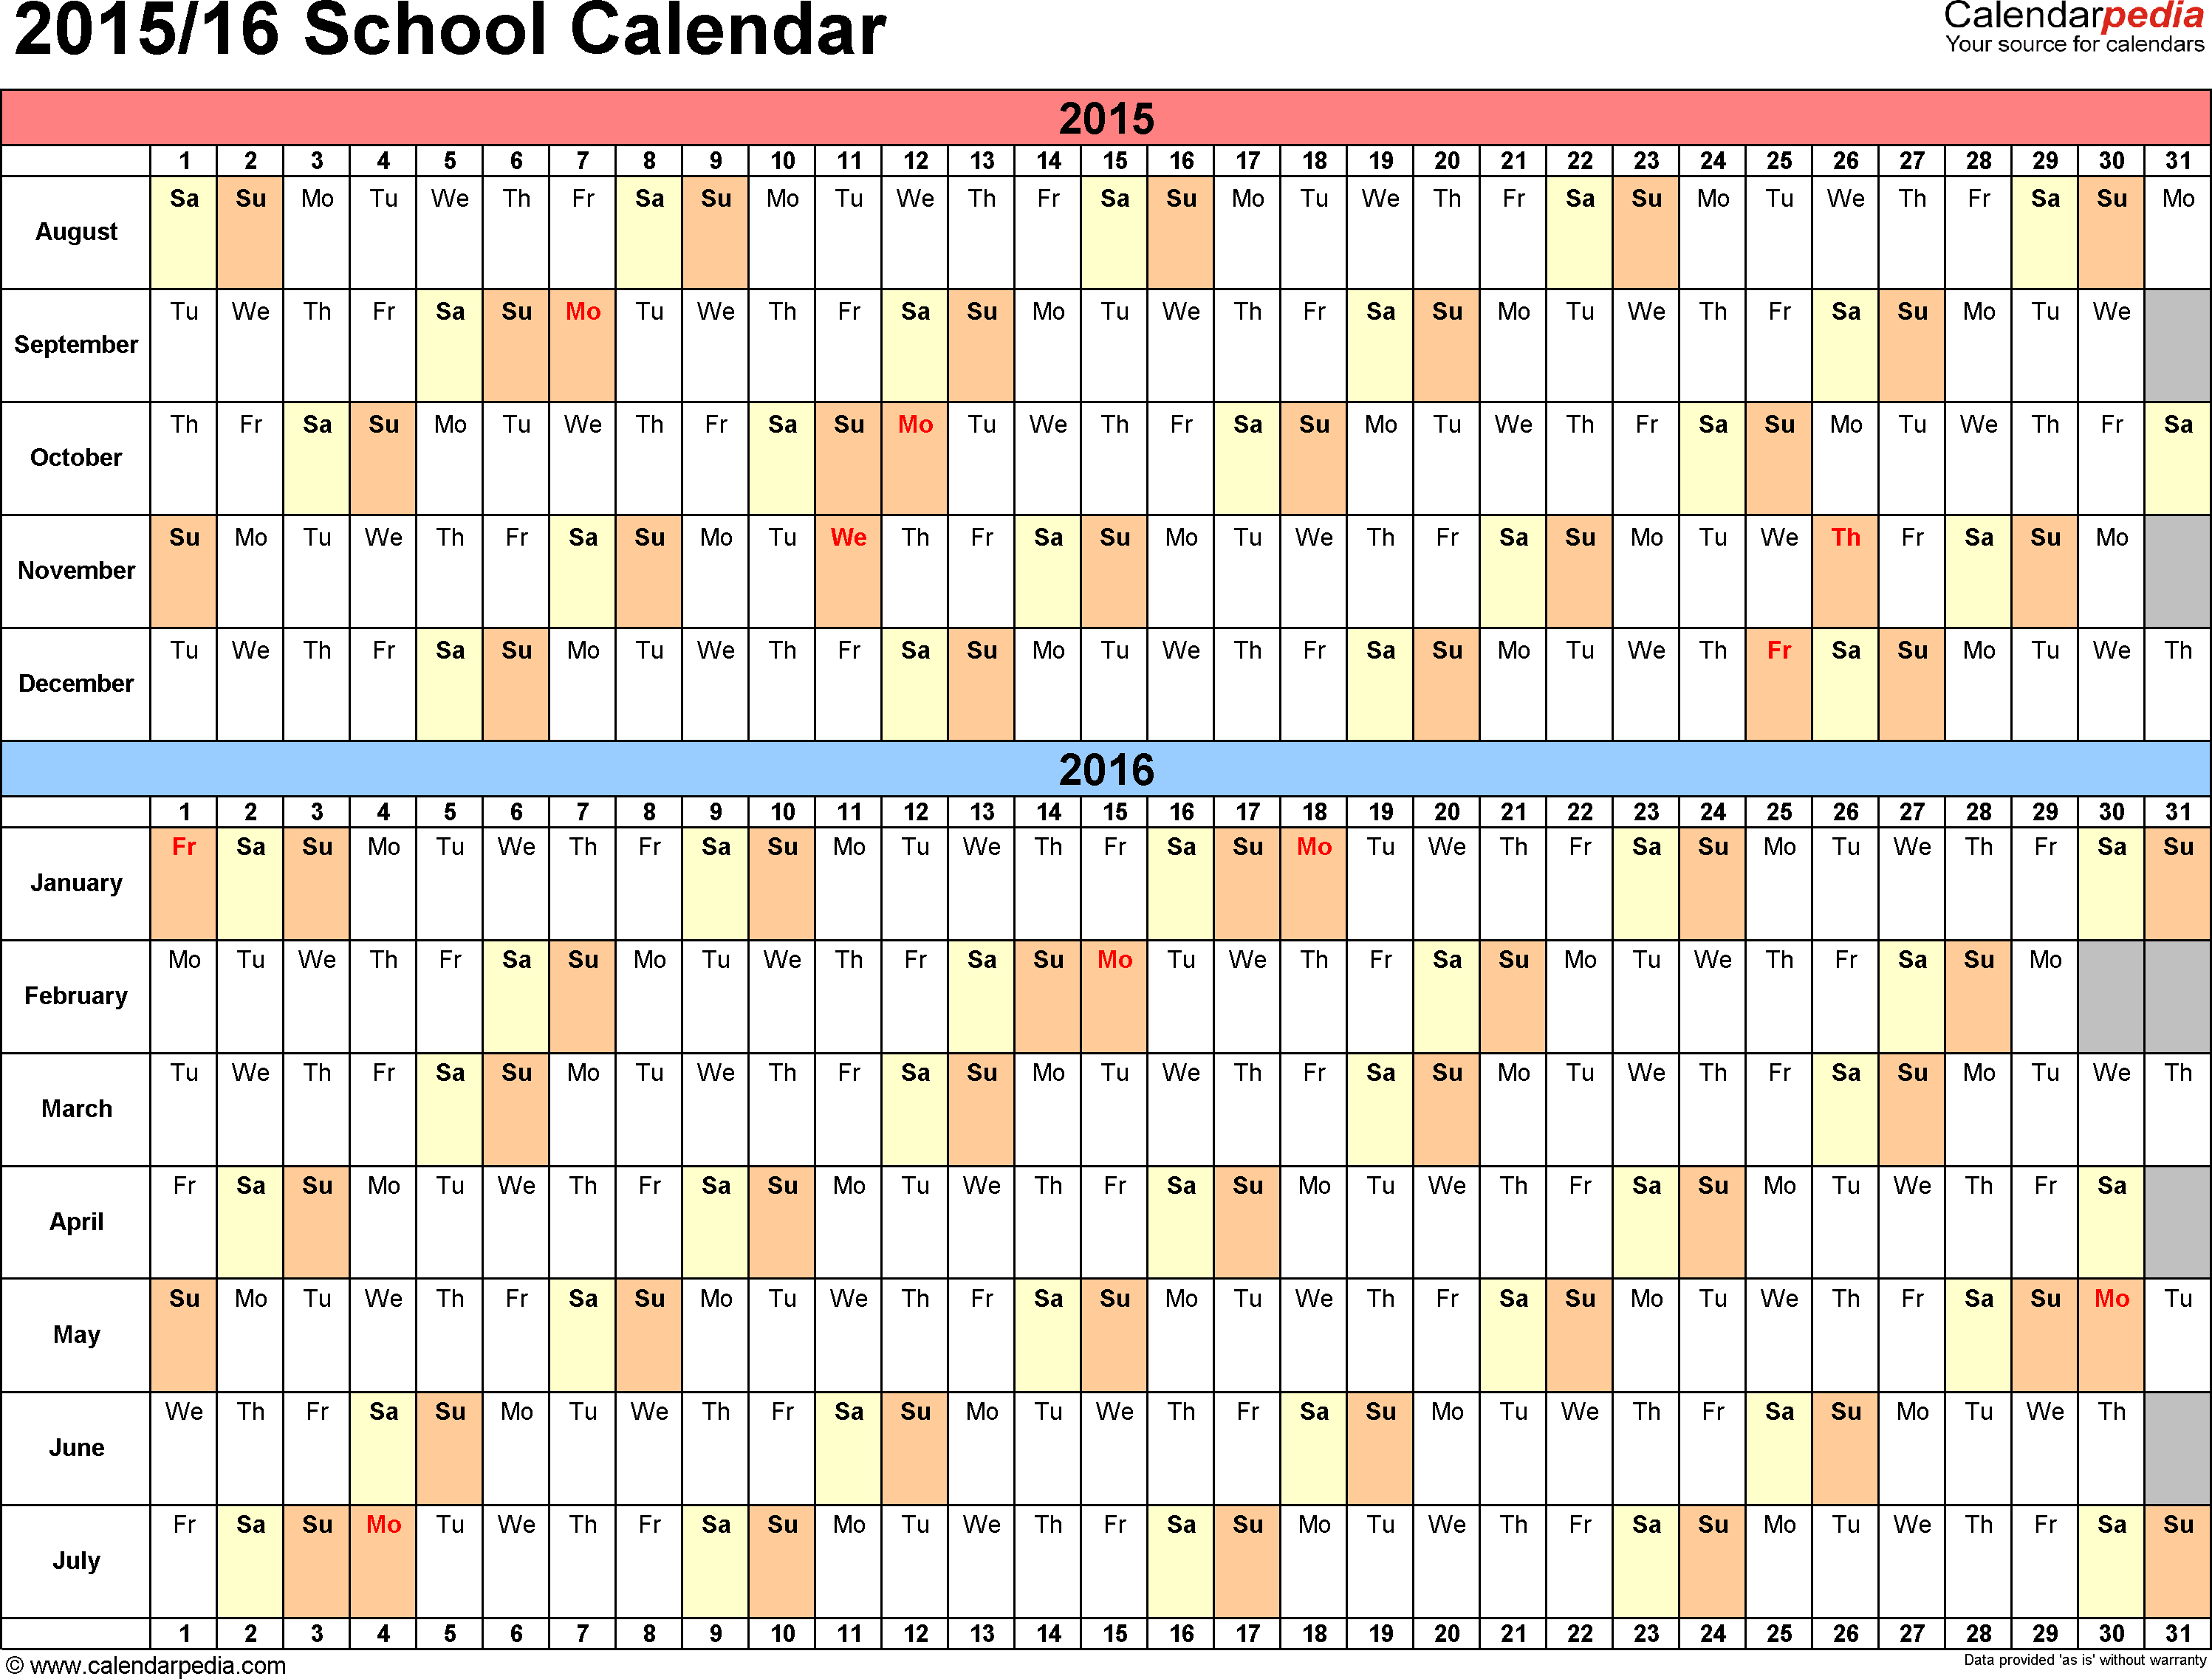 Download Template 3: School calendar 2015/16 in PDF format, landscape, 1 page, linear